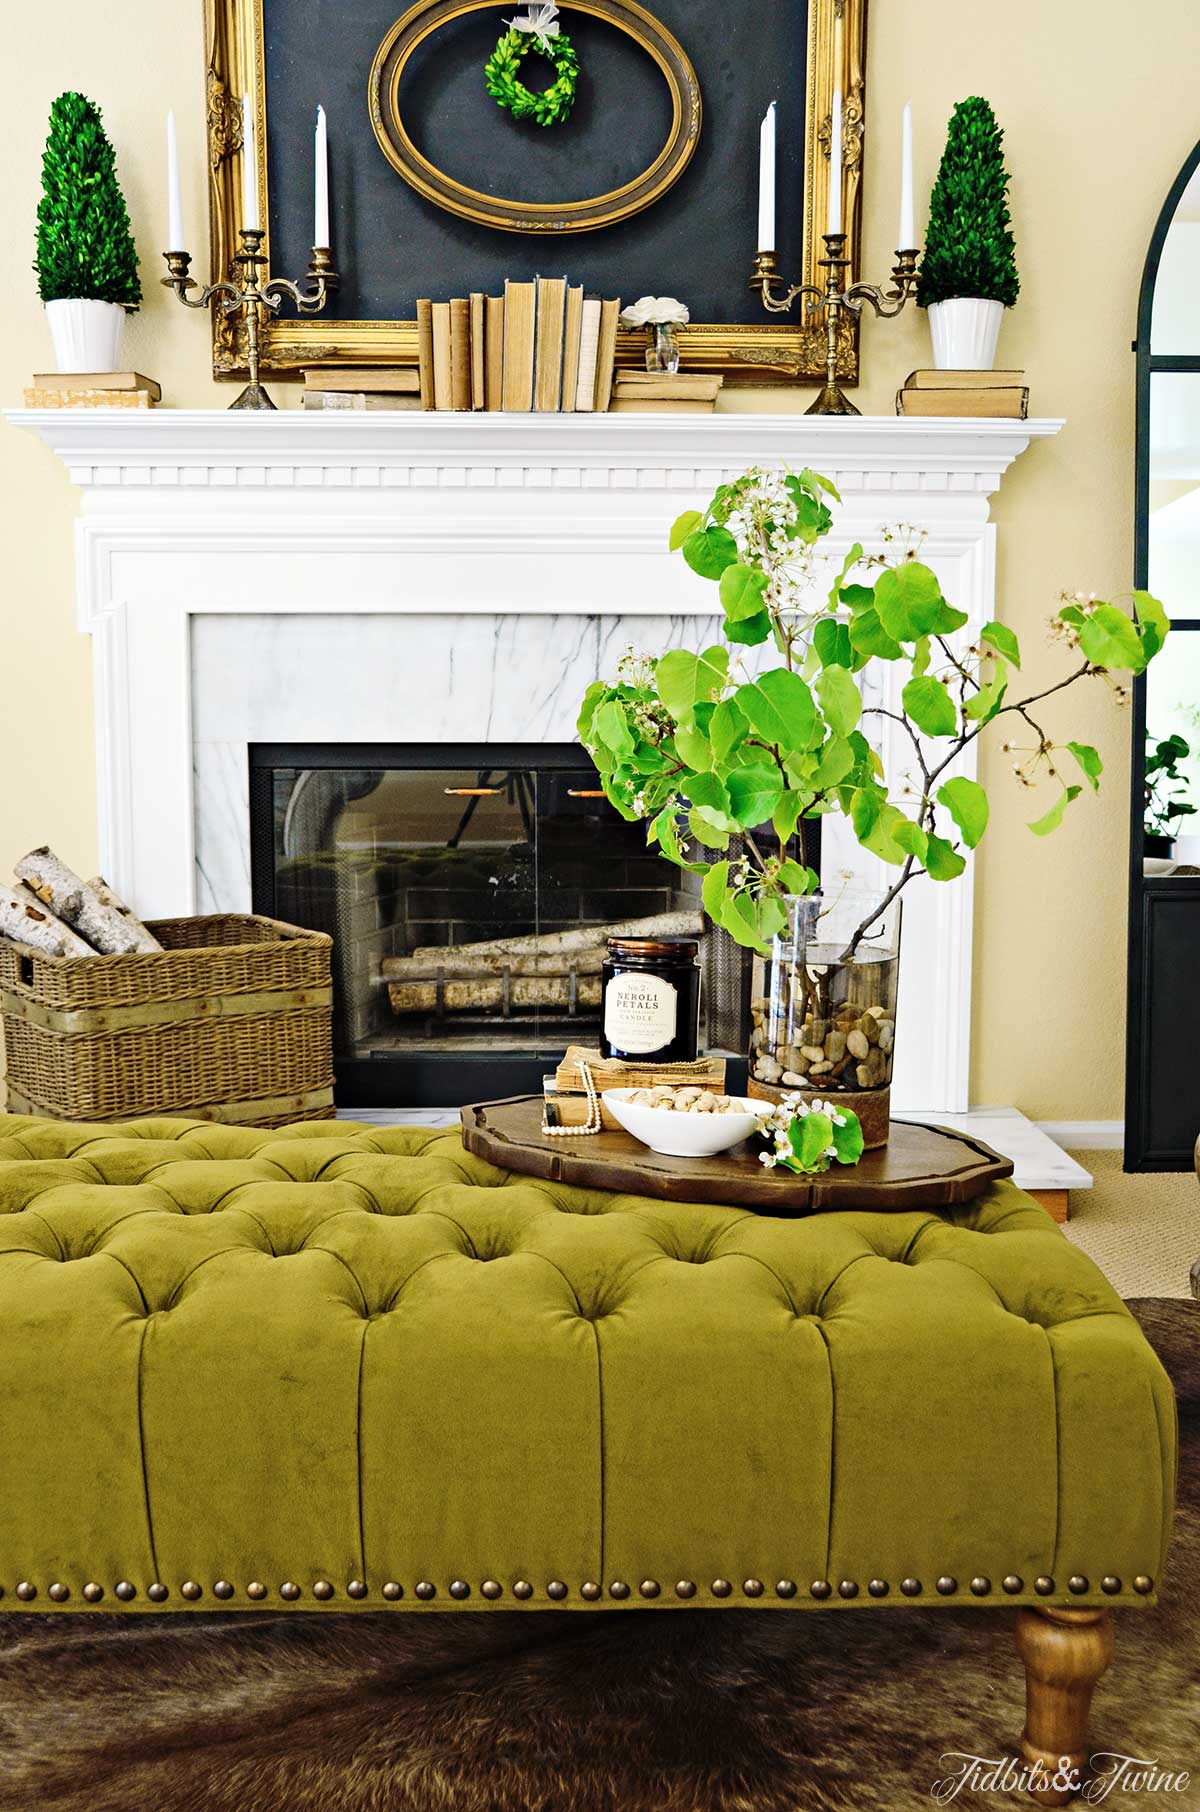 TIDBITS&TWINE: My Living-Room Tufted Ottoman and Mantel